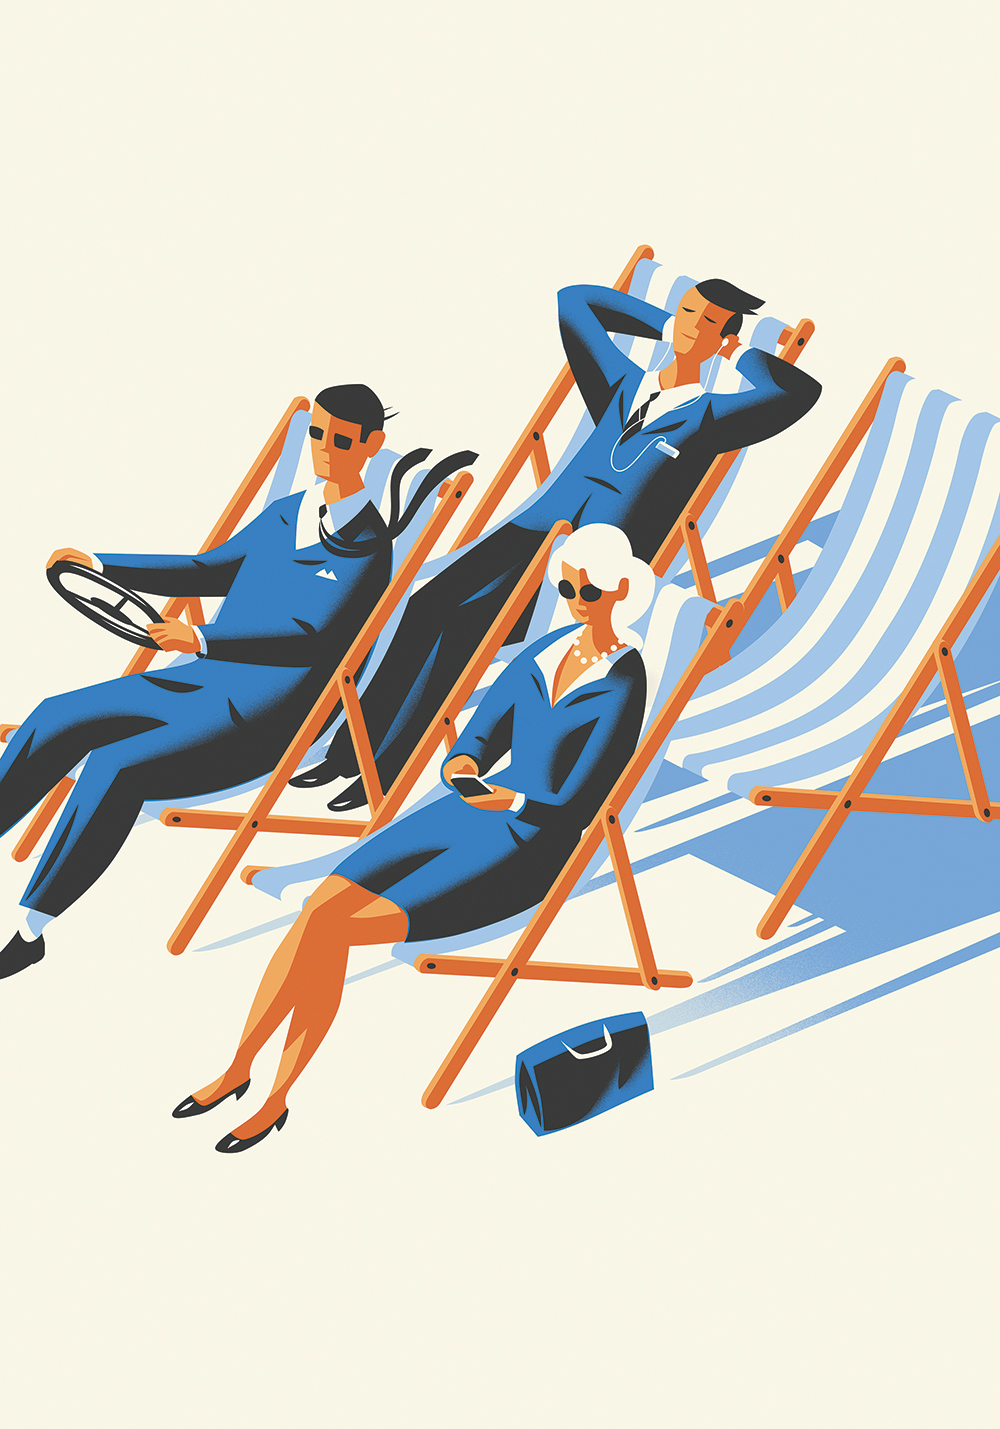 Driving Deckchairs deco poster illustration-Dean Gorissen.jpg.jpg